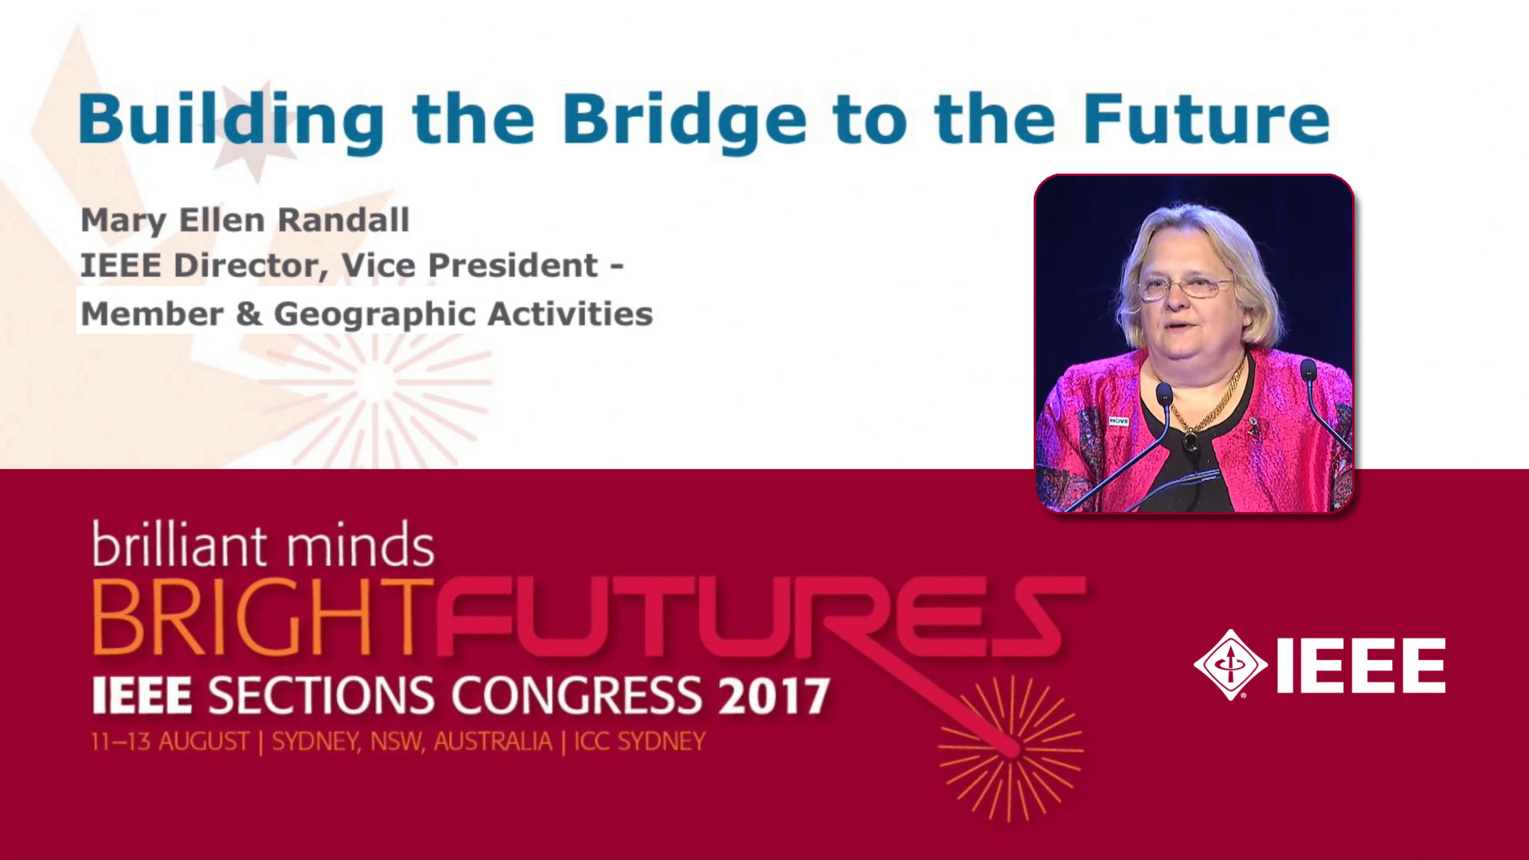 Building the Bridge to the Future - Mary Ellen Randall - Opening Ceremony: Sections Congress 2017